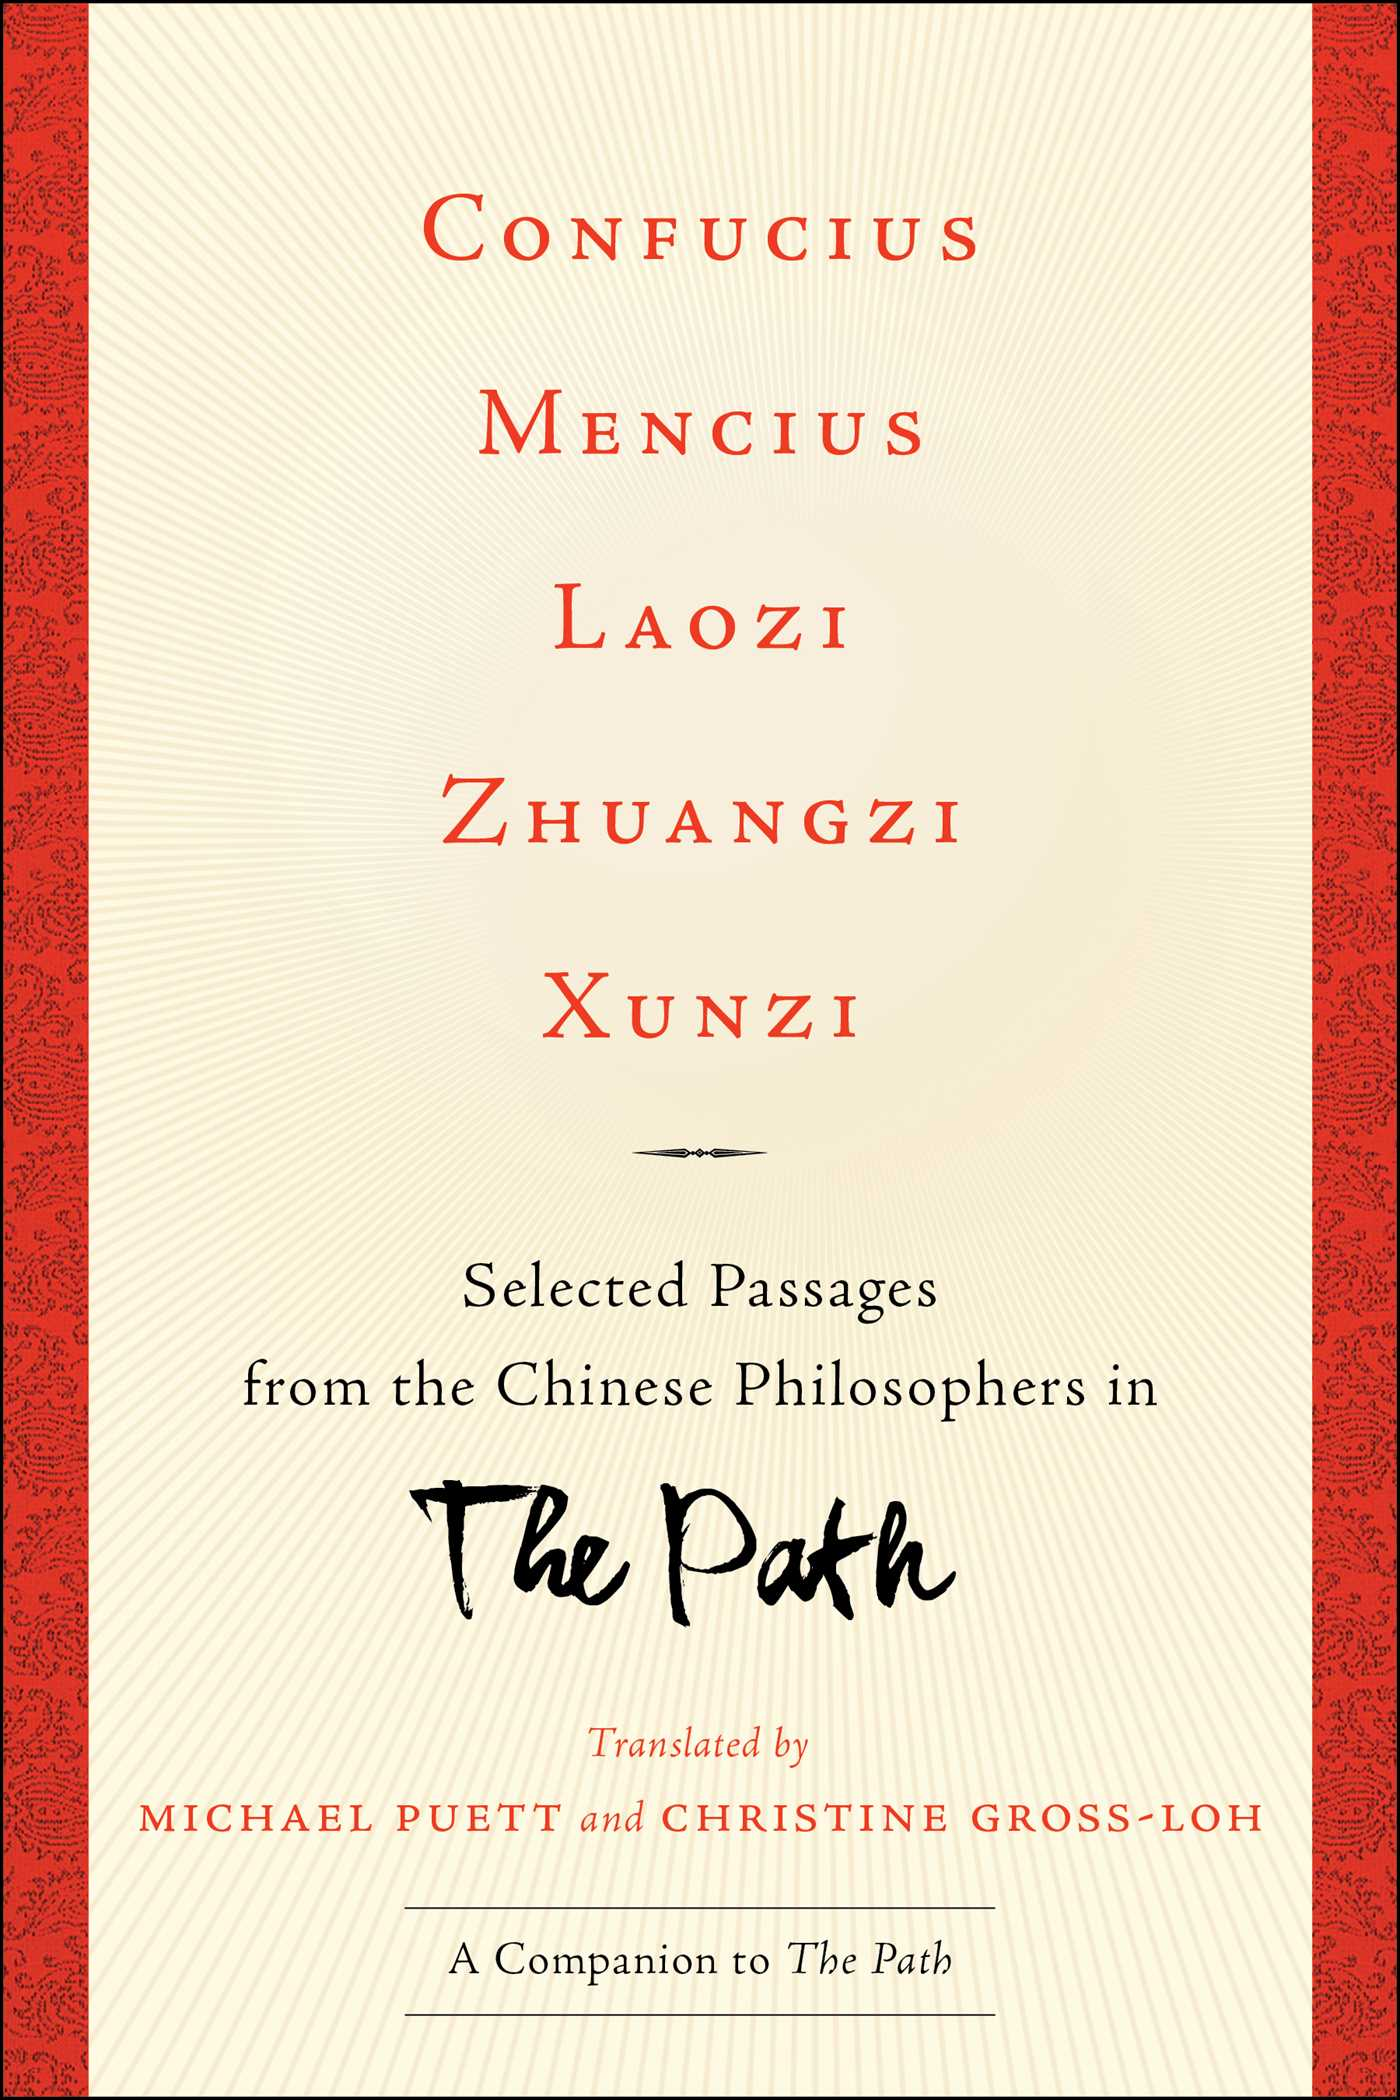 Confucius mencius laozi zhuangzi xunzi ebook by michael puett selected passages from the chinese philosophers in the path fandeluxe Images